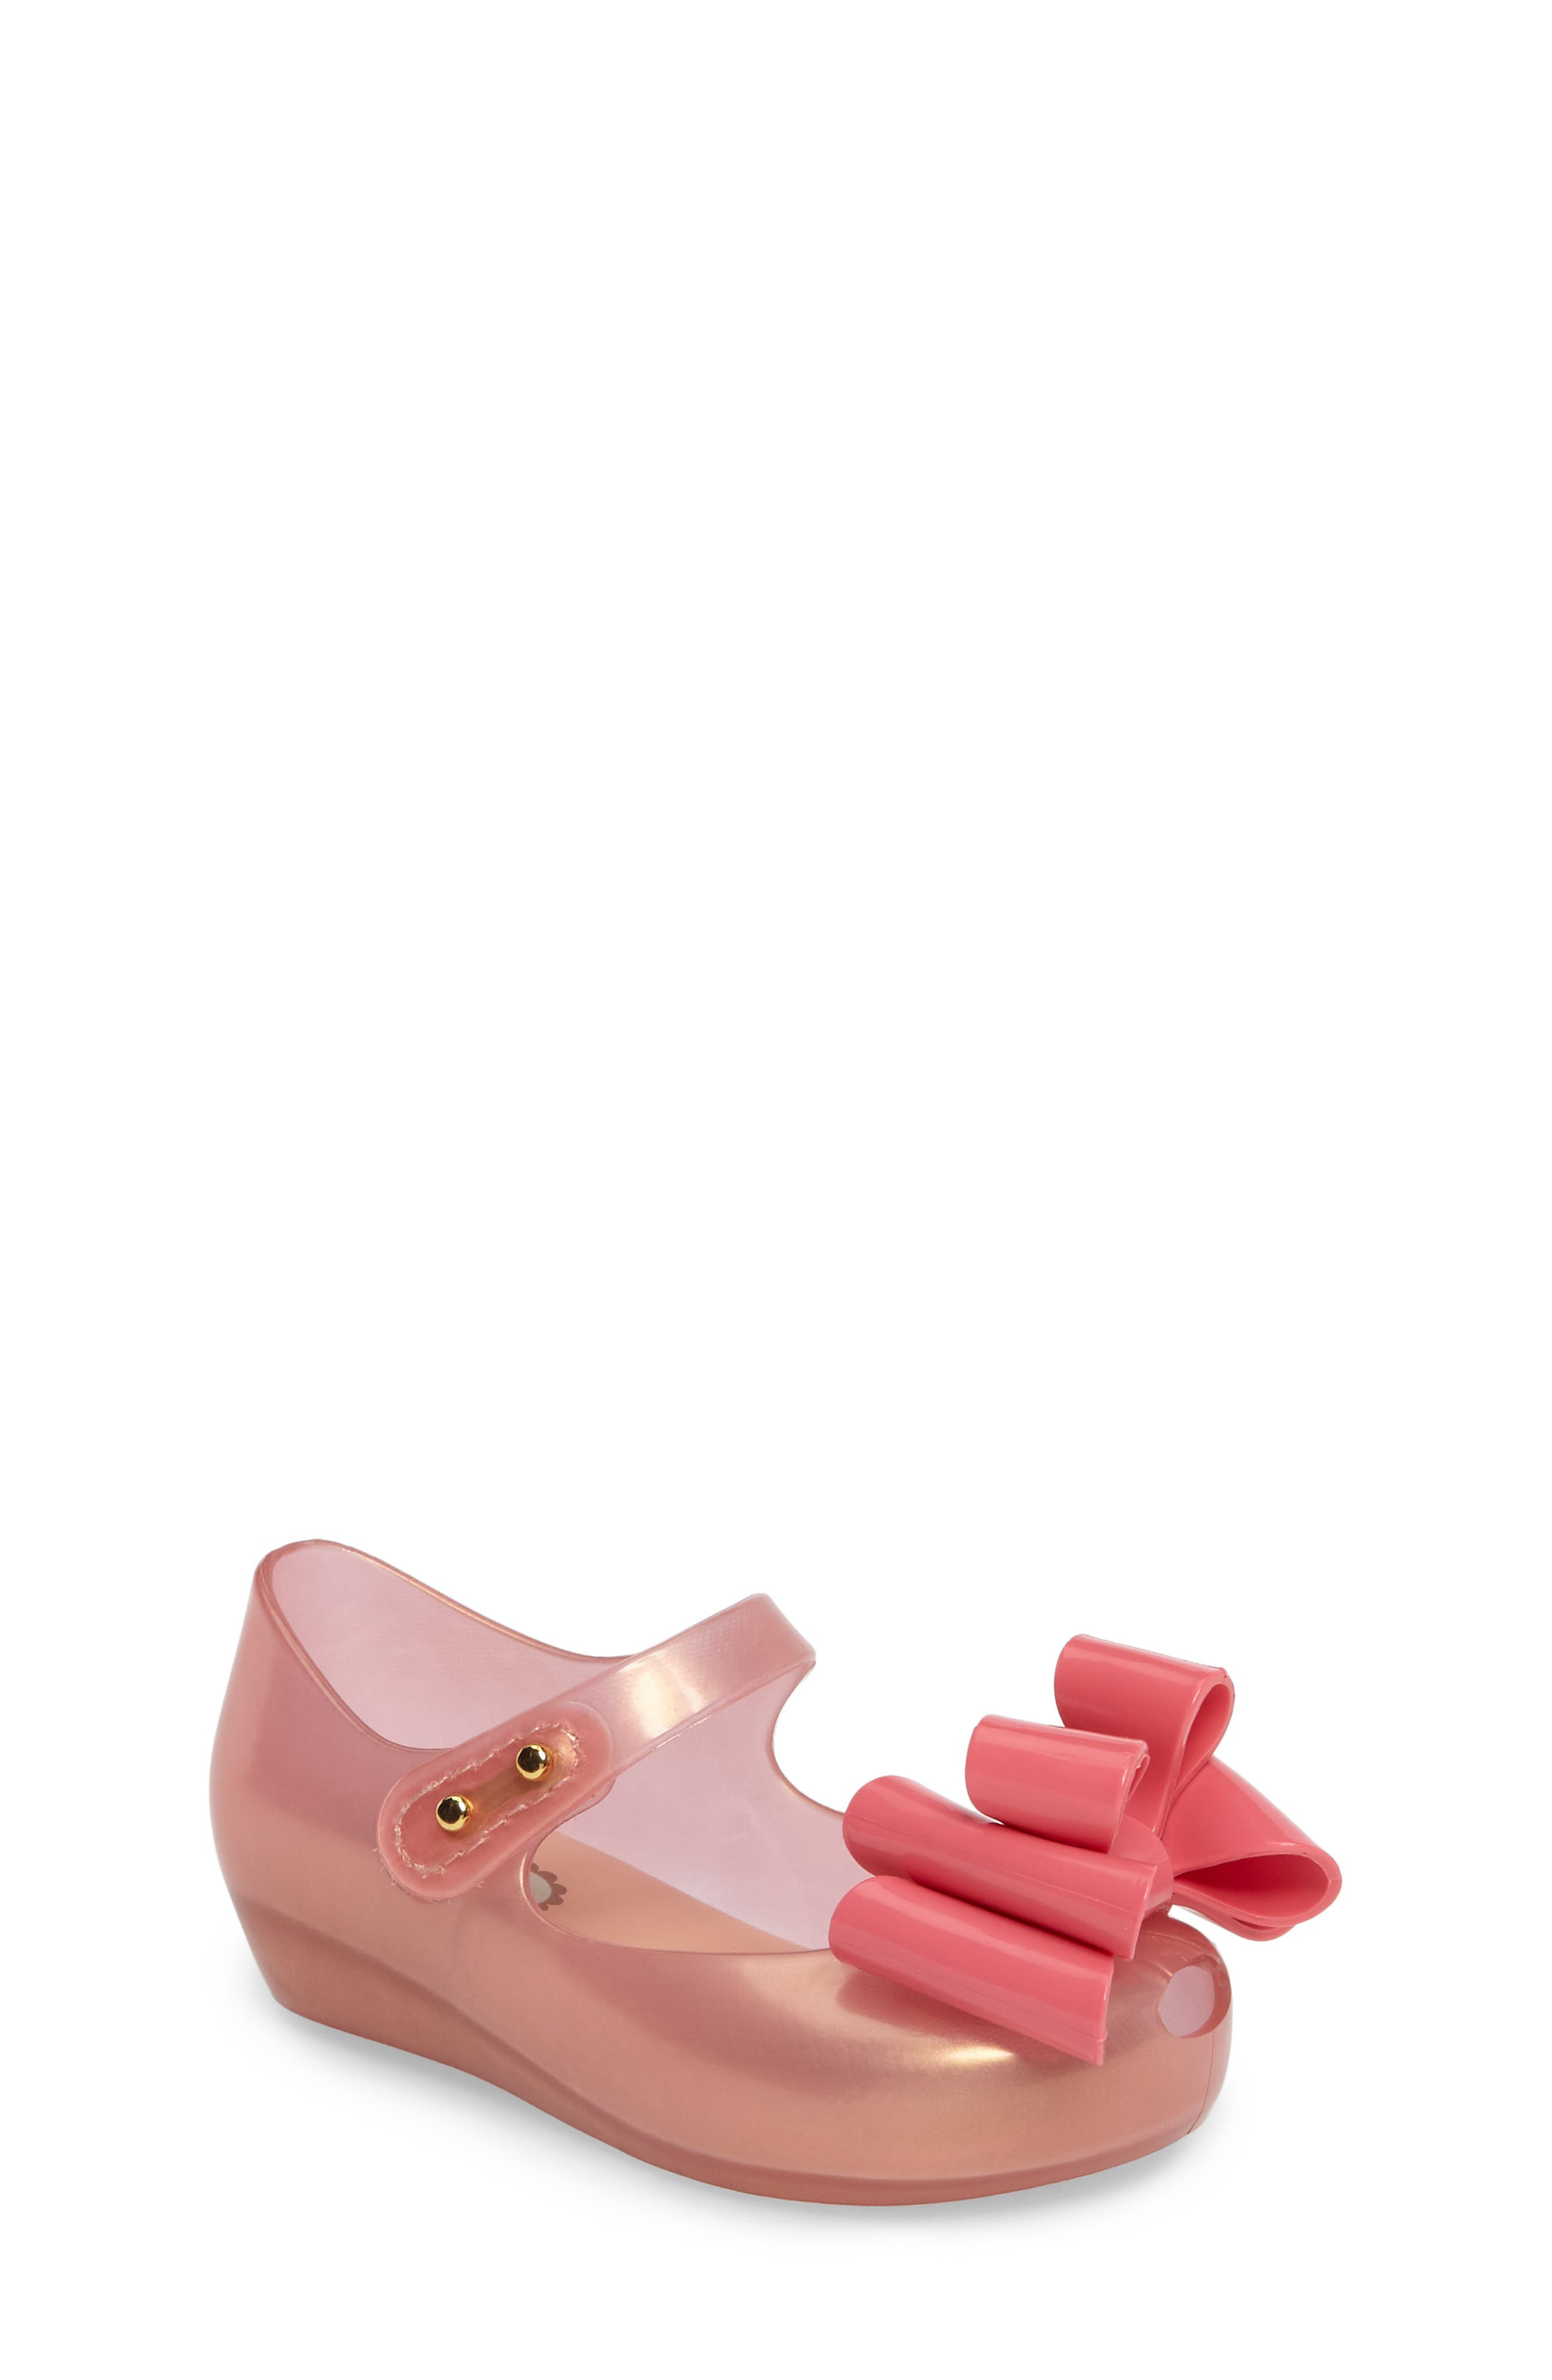 Alternate Image 1 Selected - Mini Melissa Ultragirl Sweet III Mary Jane Flat (Walker & Toddler)